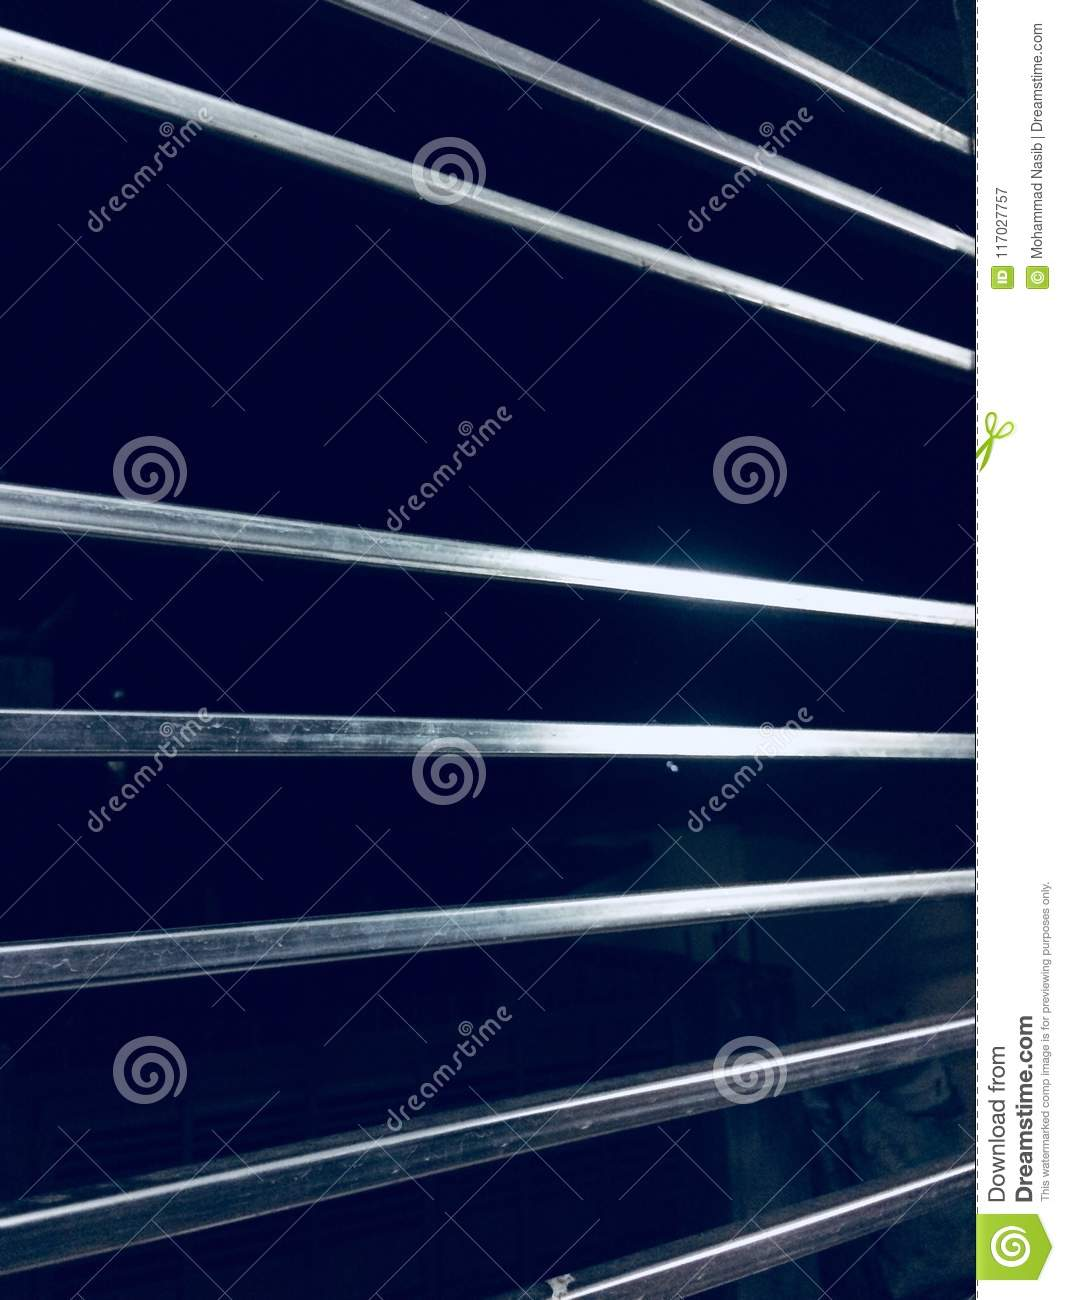 Download Stylish Metallic Interior Protection Grill Object Photograph Stock Image - Image of shape, poster: 117027757